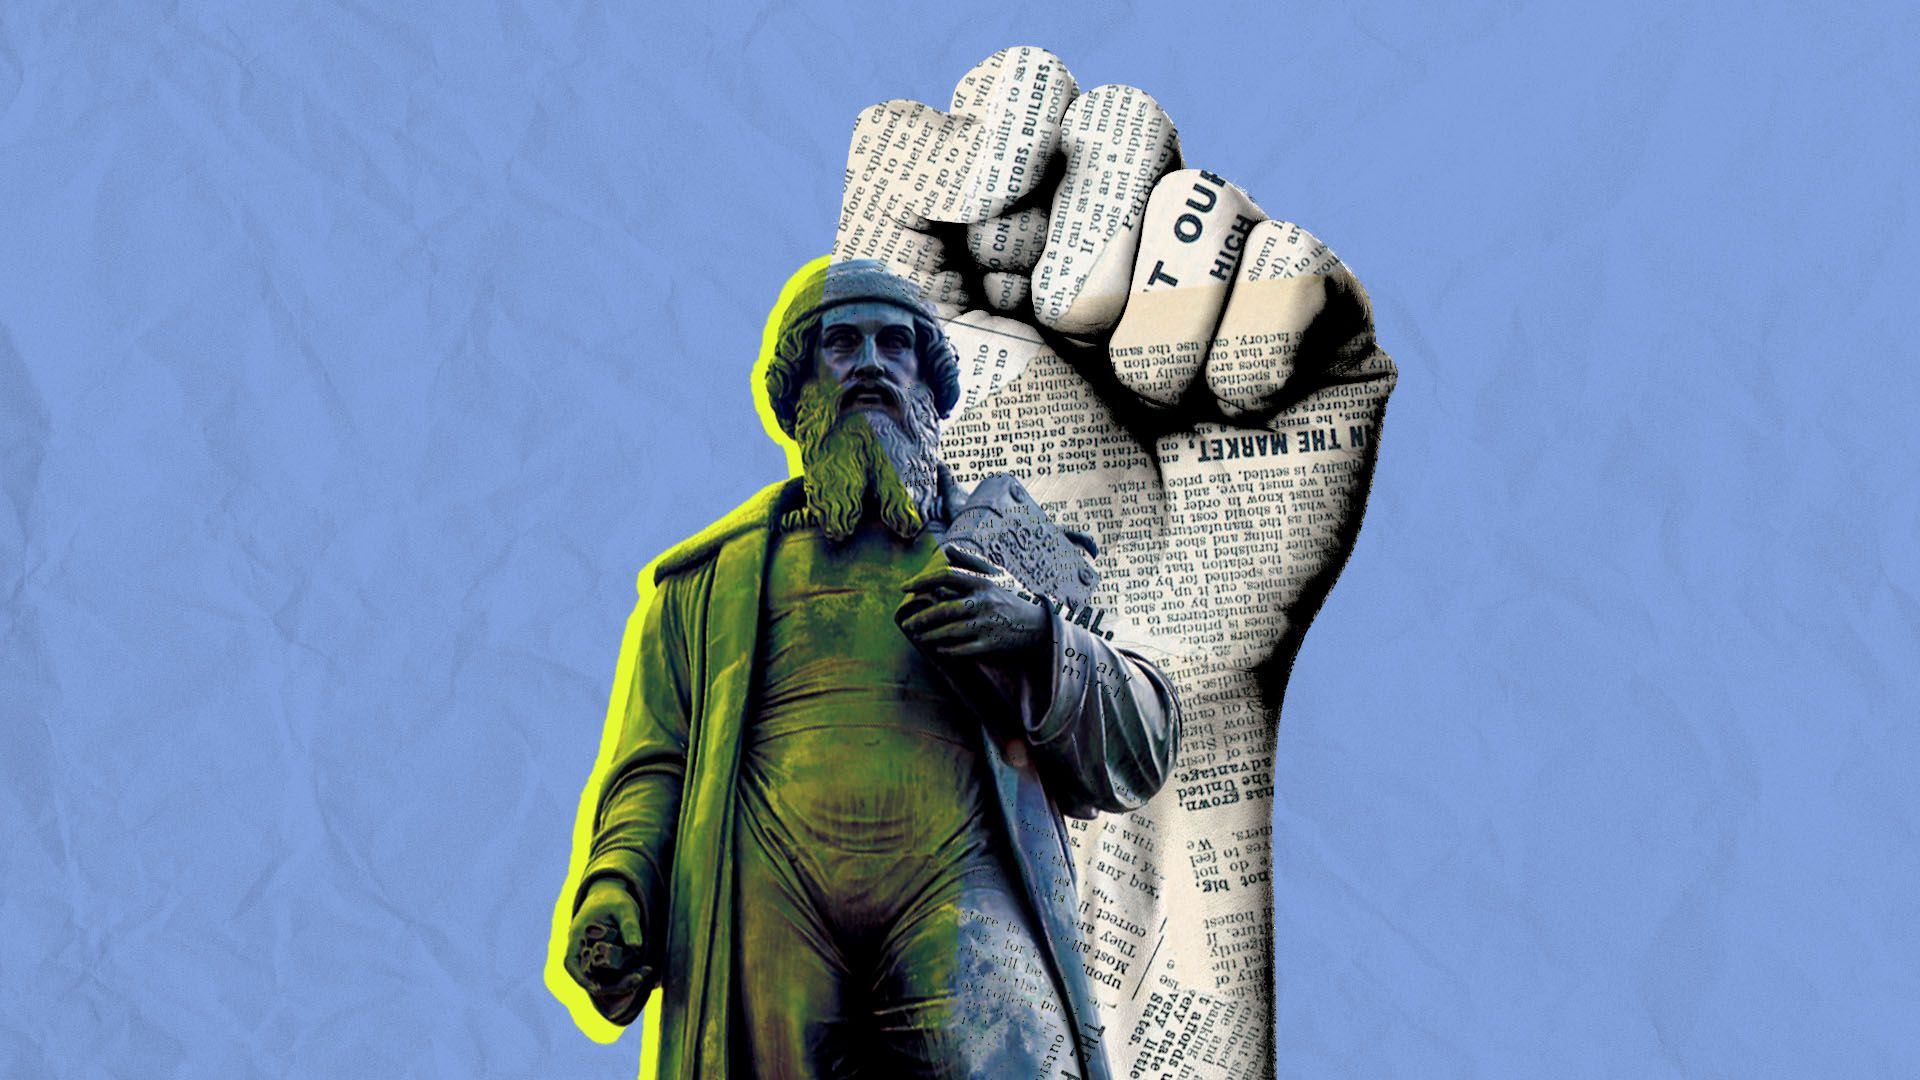 Illustration of Johannes Gutenberg statue with a raised fist behind him